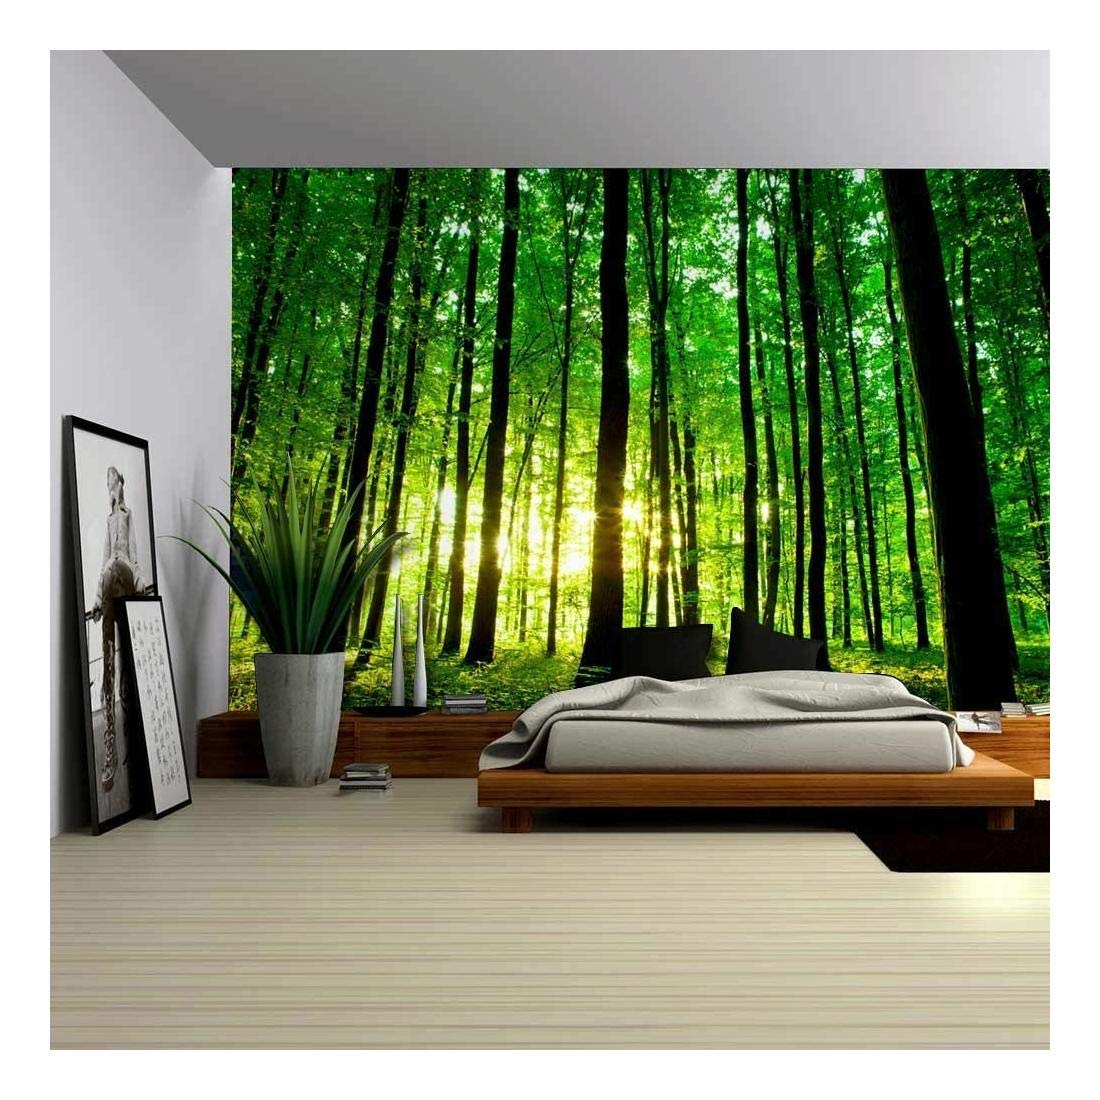 wall26 - Sun Shining Through a Tall Tree Forest - Wall Mural, Removable Sticker, Home Decor - 100x144 inches by wall26 (Image #1)